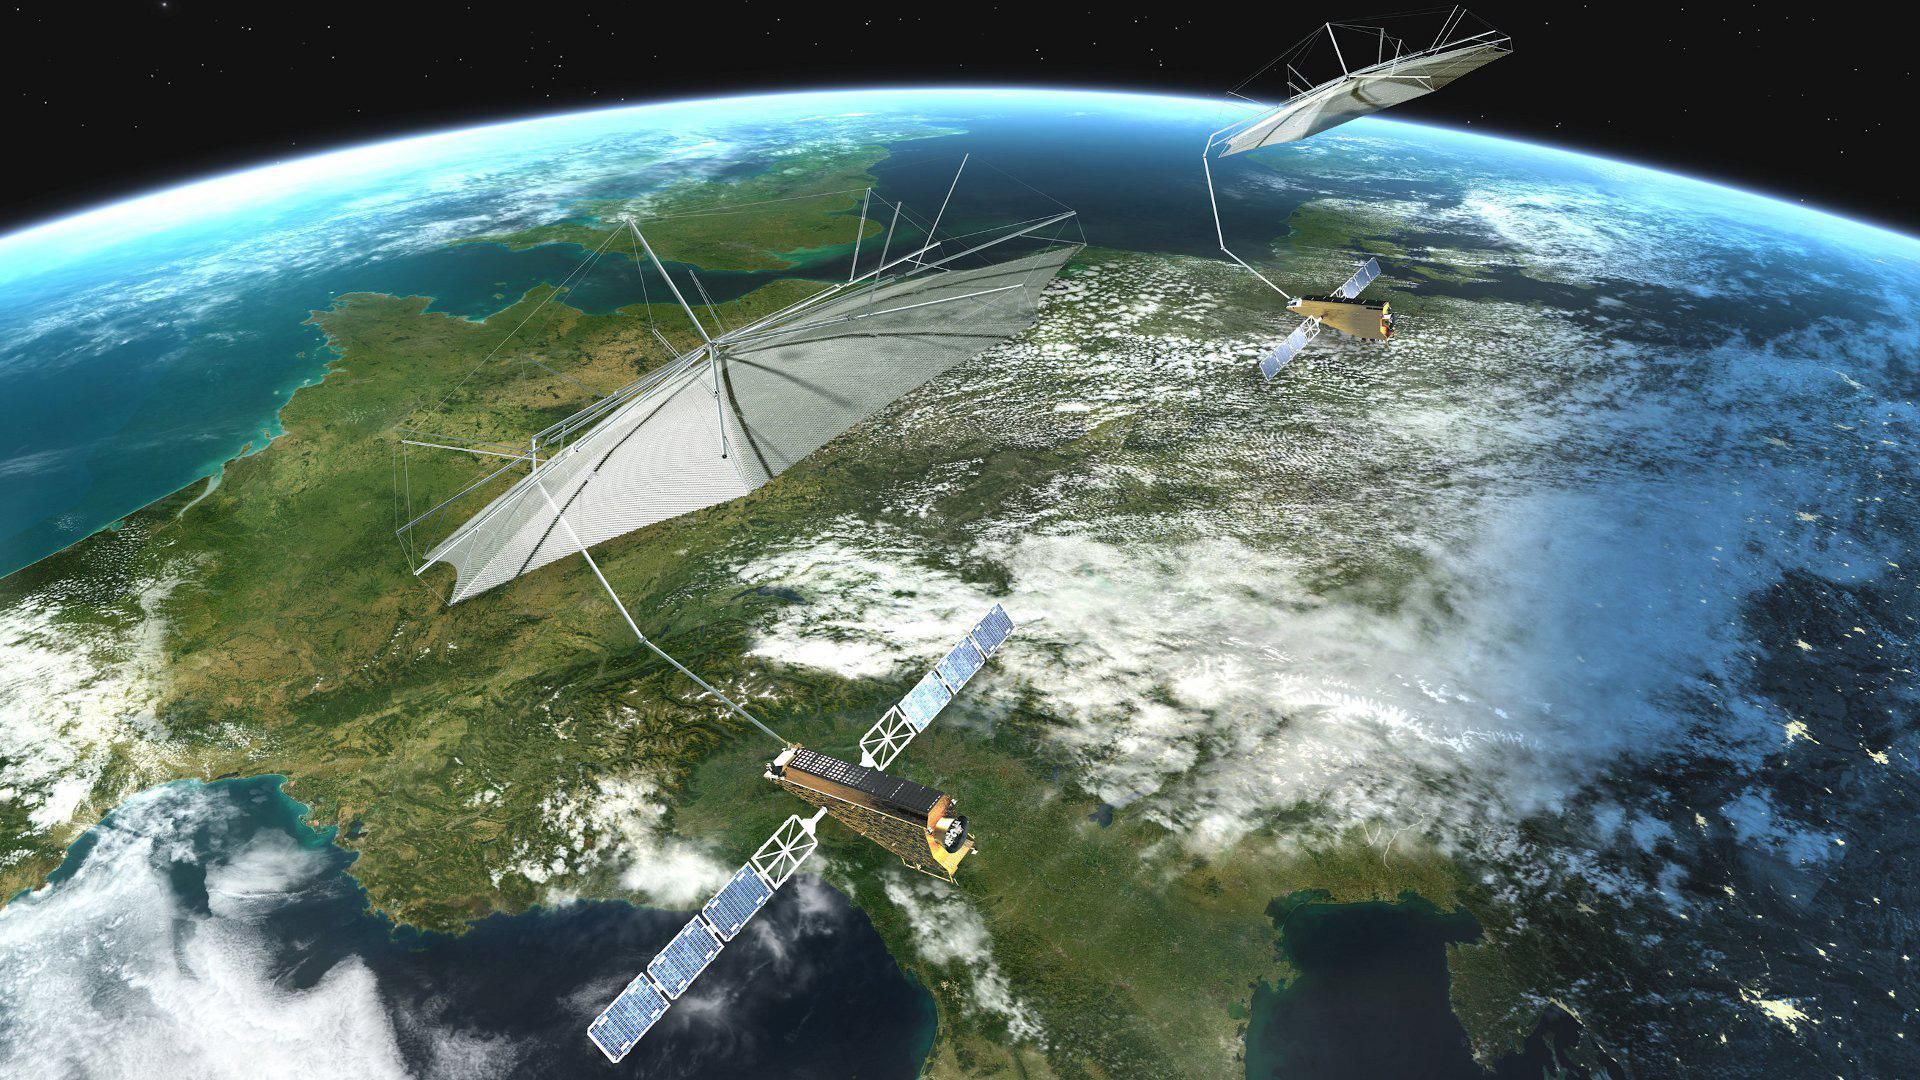 Tandem-L is a proposal for a highly innovative satellite mission for the global observation of dynamic processes on the Earth's surface